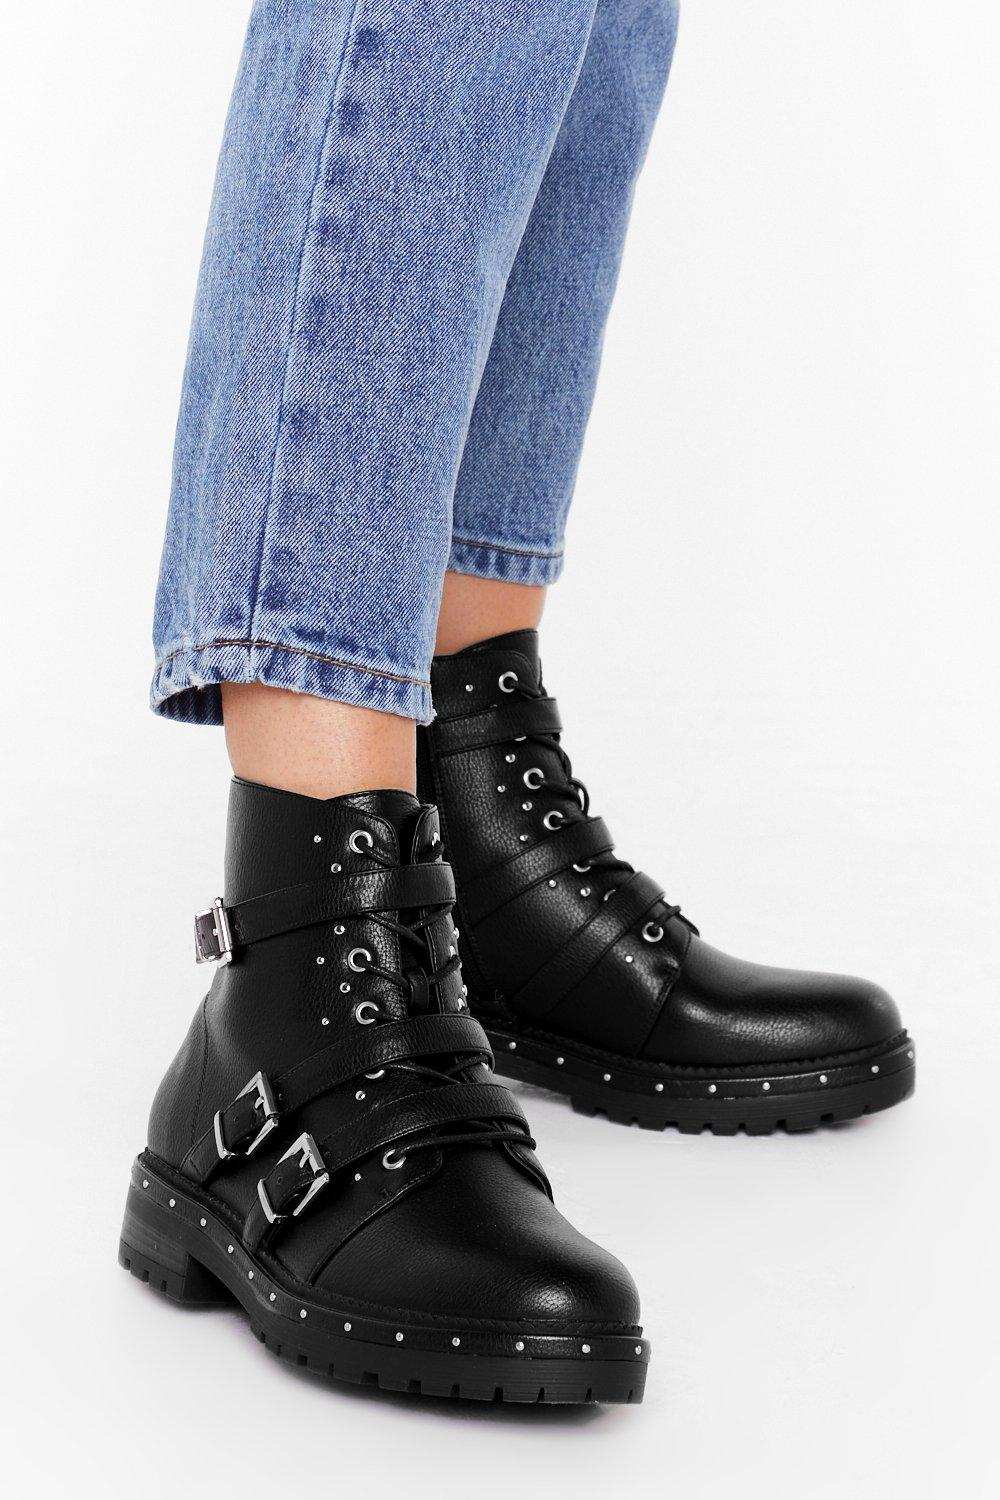 Image of Buck 'Em All Faux Leather Boots